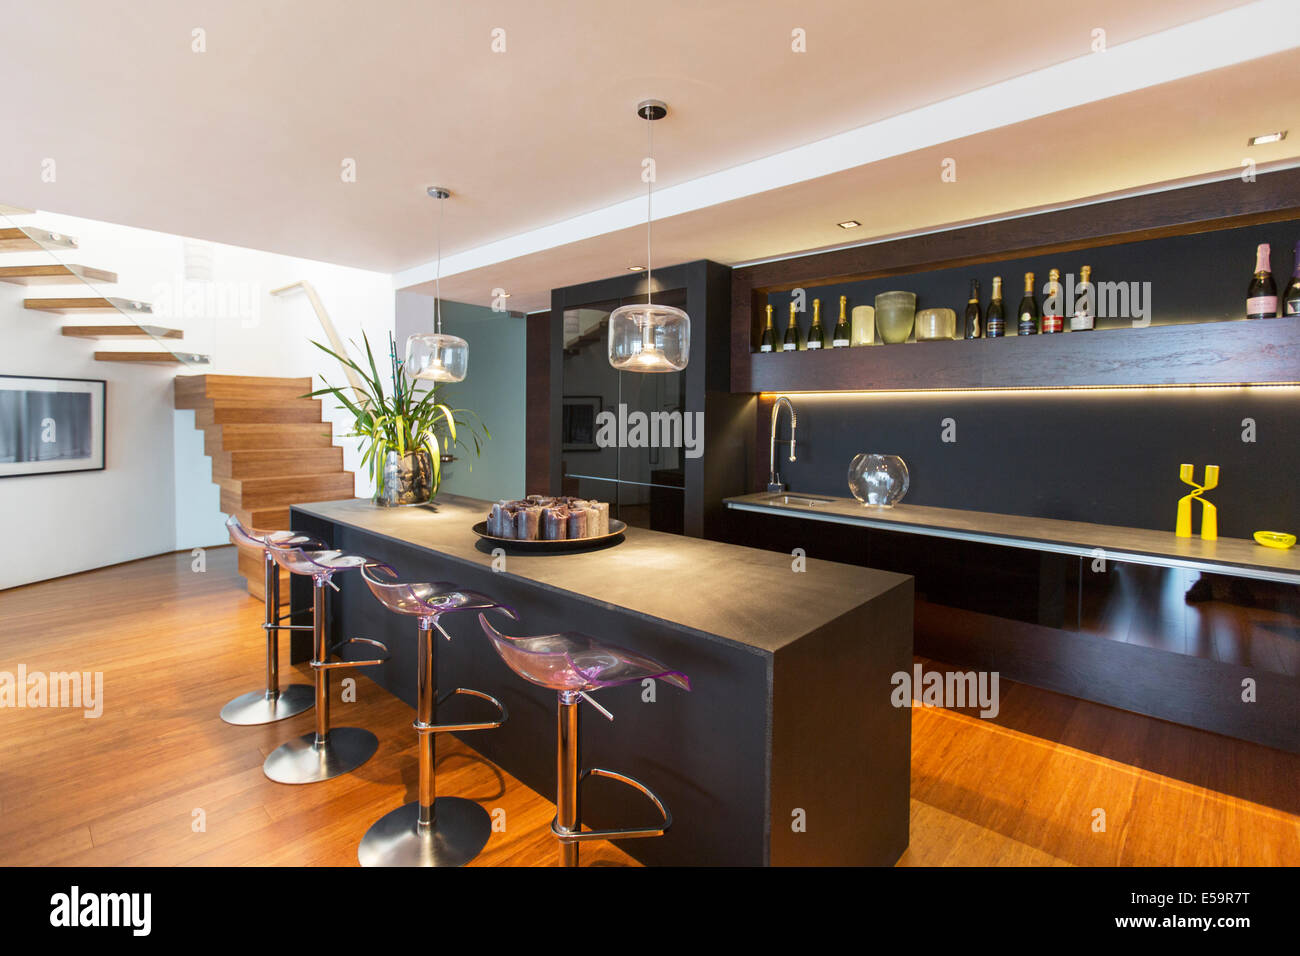 Bar stools and countertop in modern lounge - Stock Image